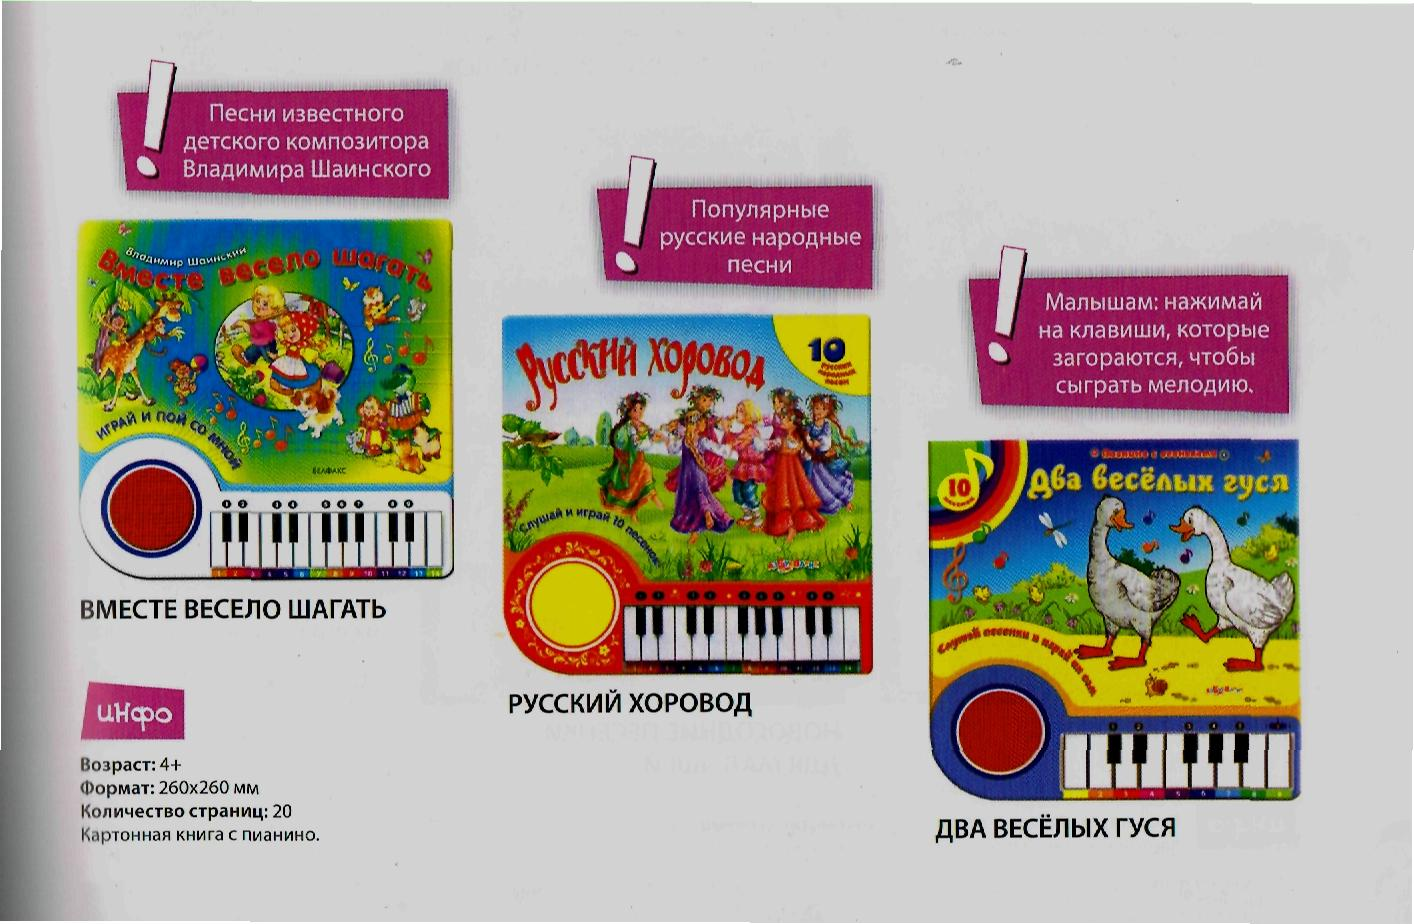 http://kinder178.ru/images/upload/Книга-пианино.jpg